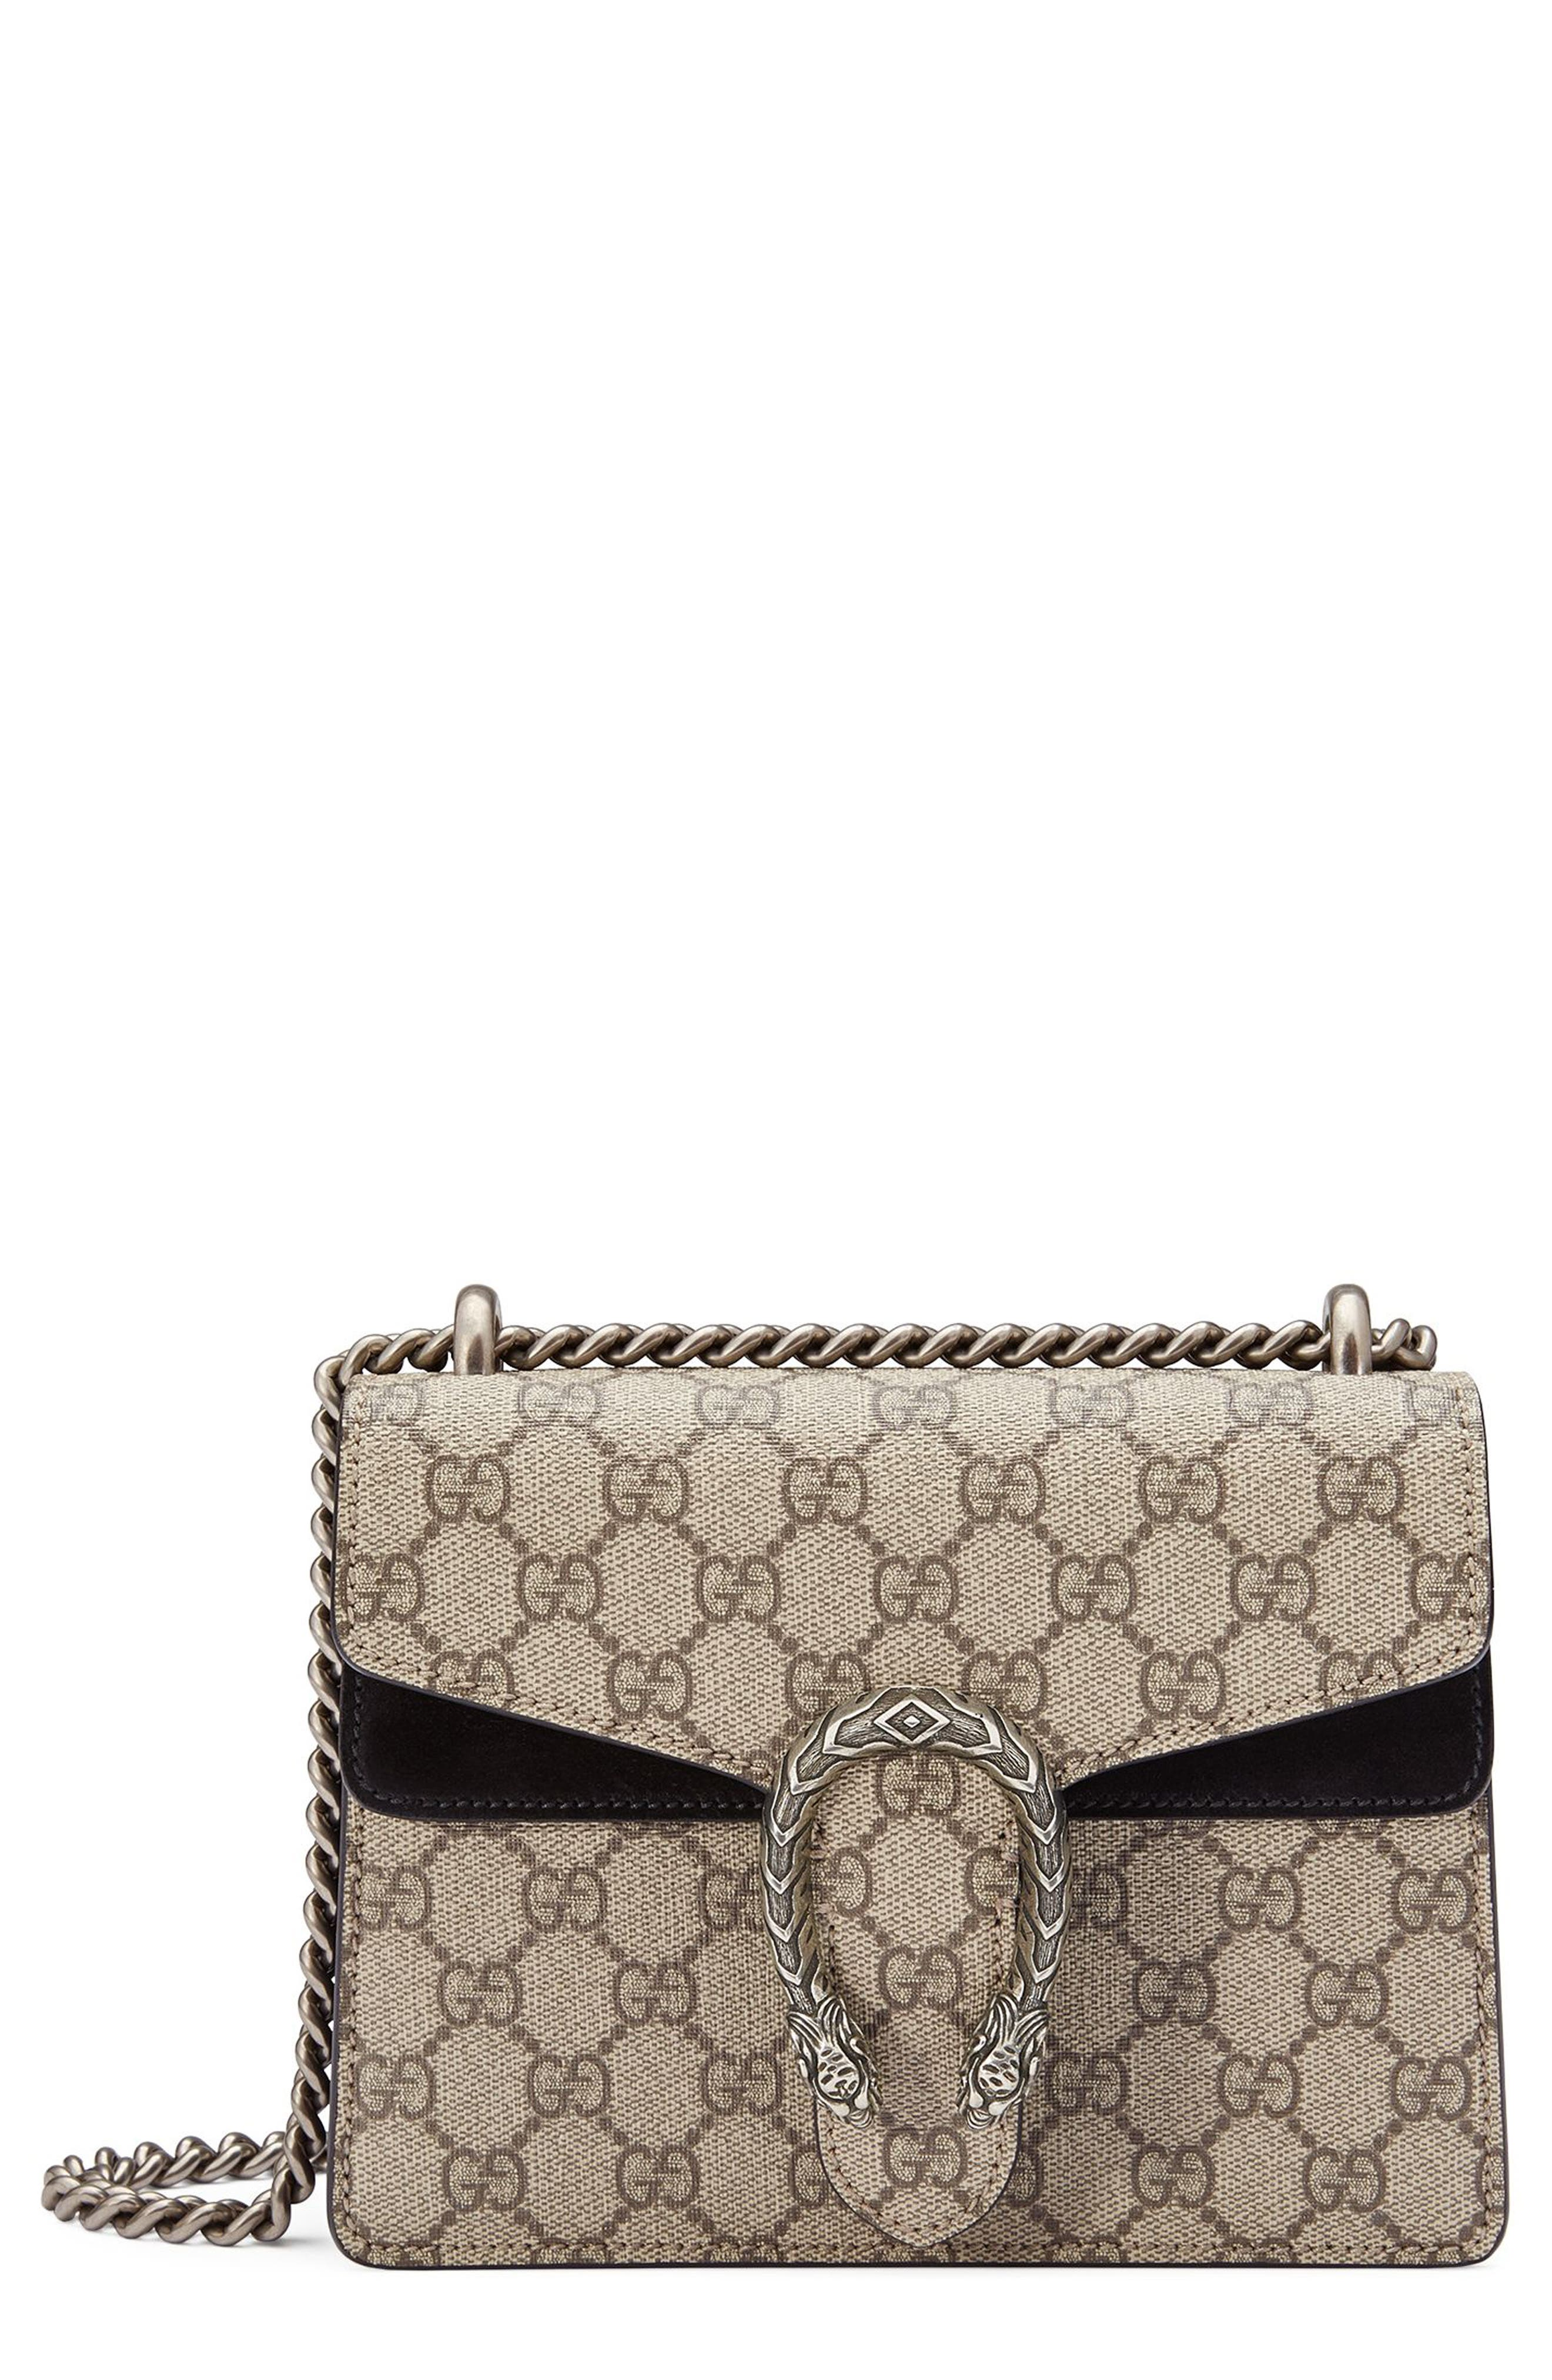 Main Image - Gucci Mini Dionysus GG Supreme Shoulder Bag